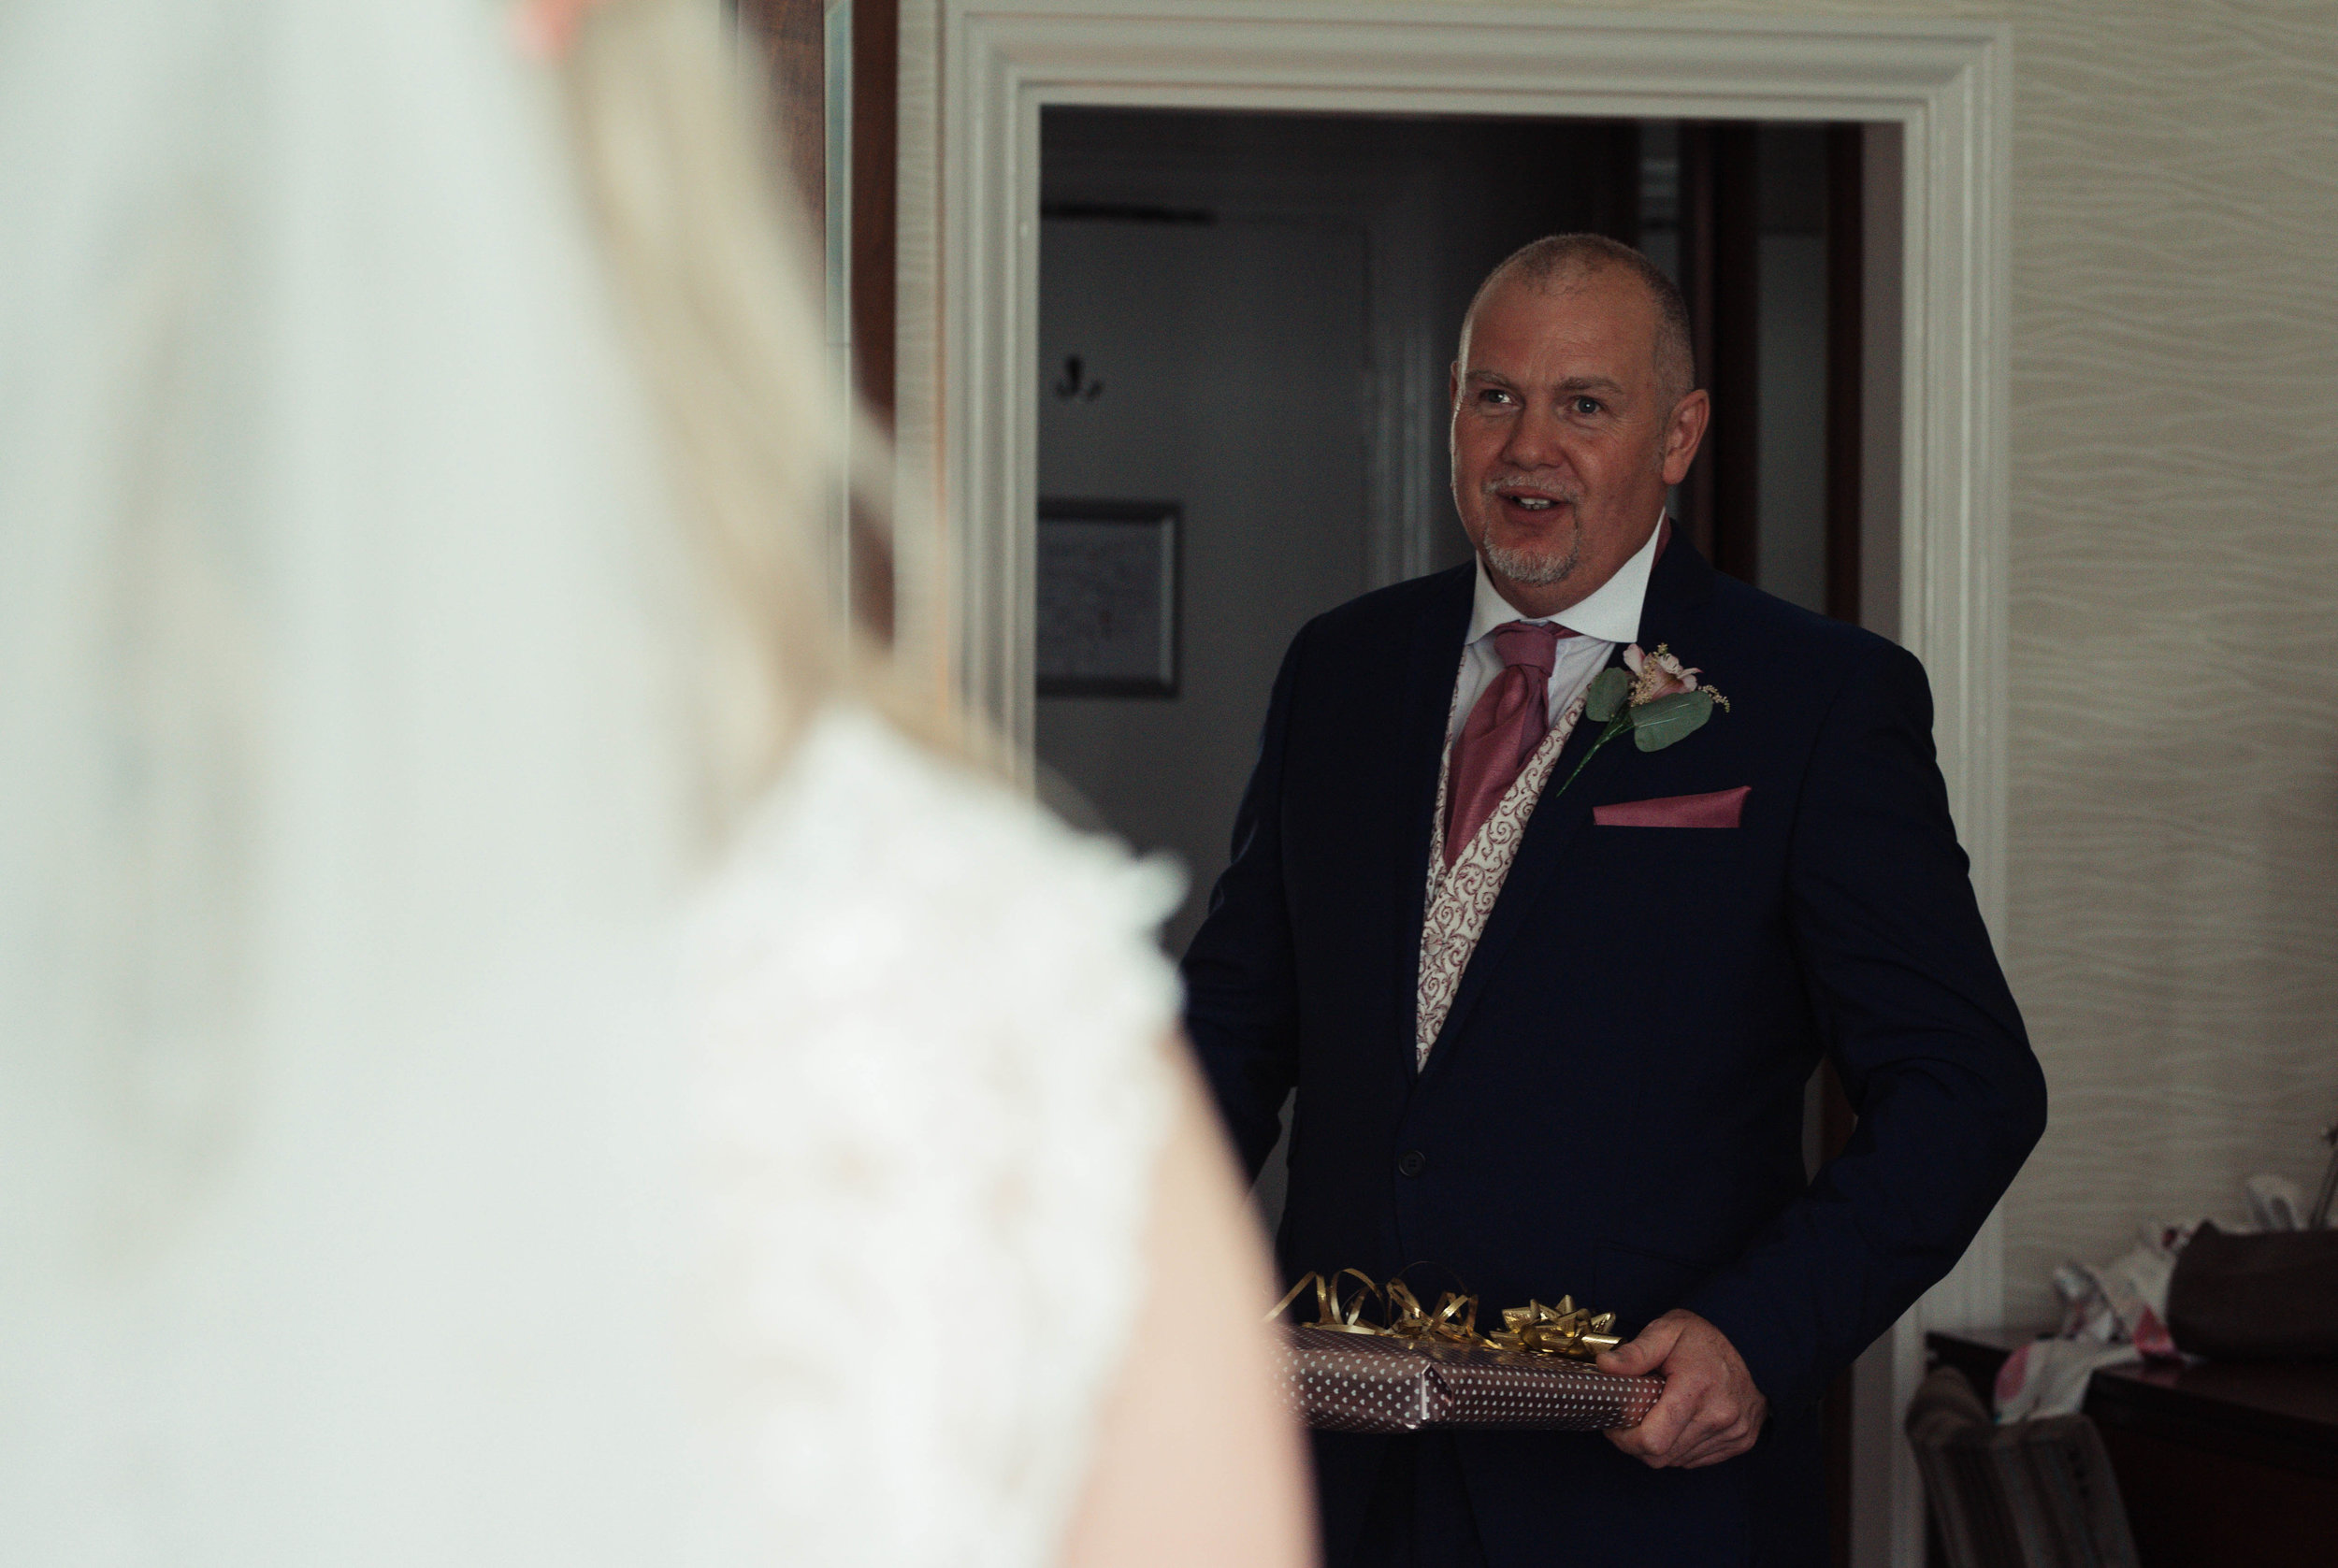 Father of the bride sees his daughter for the first time in a wedding dress